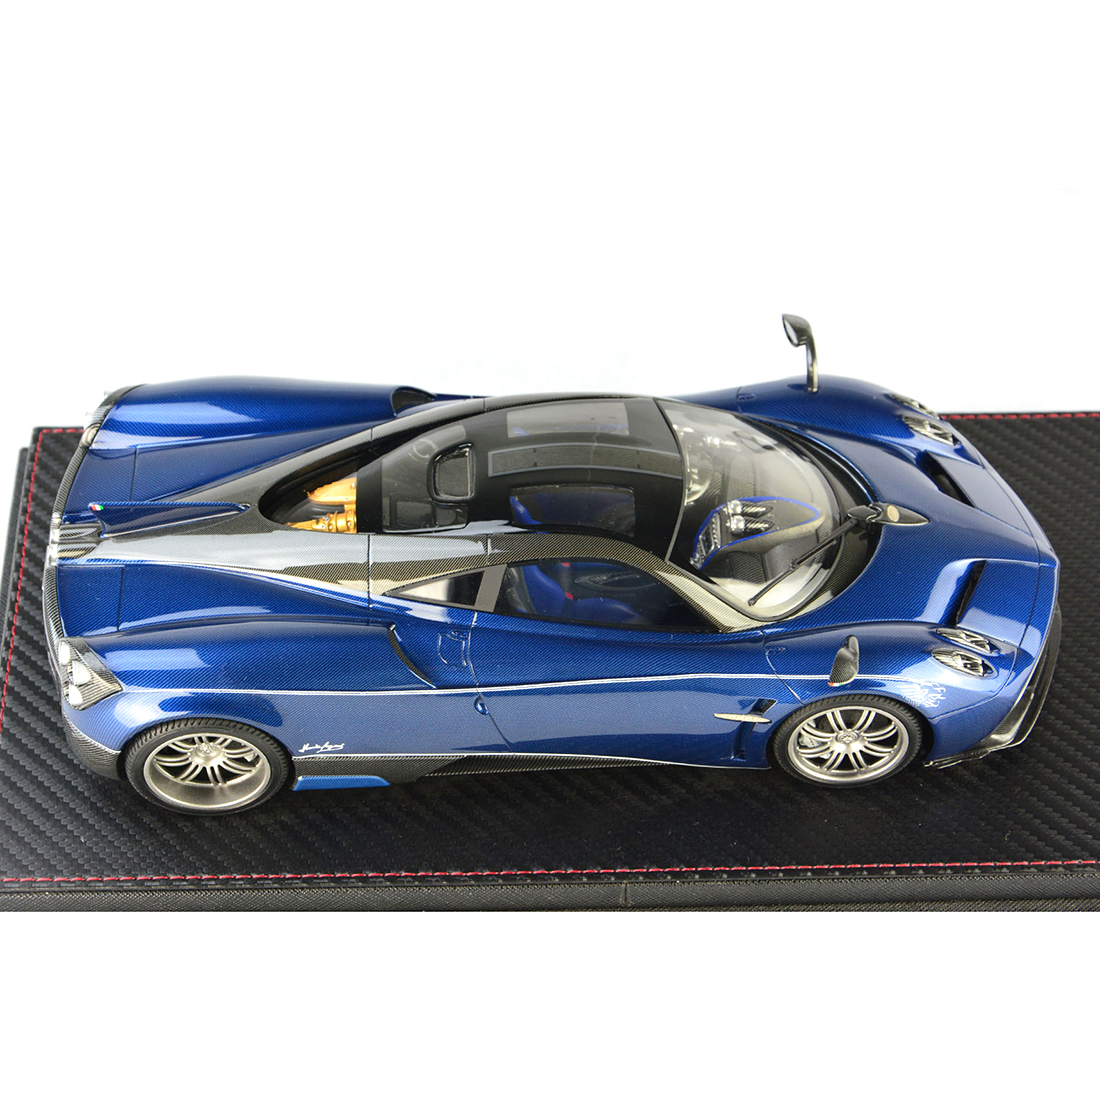 1:18 Car Model Pagani HUAYRA Model Collection Decor With Base Dust Cover Model Educational Toy Blue/Charcoal Grey/Purple Red - 6